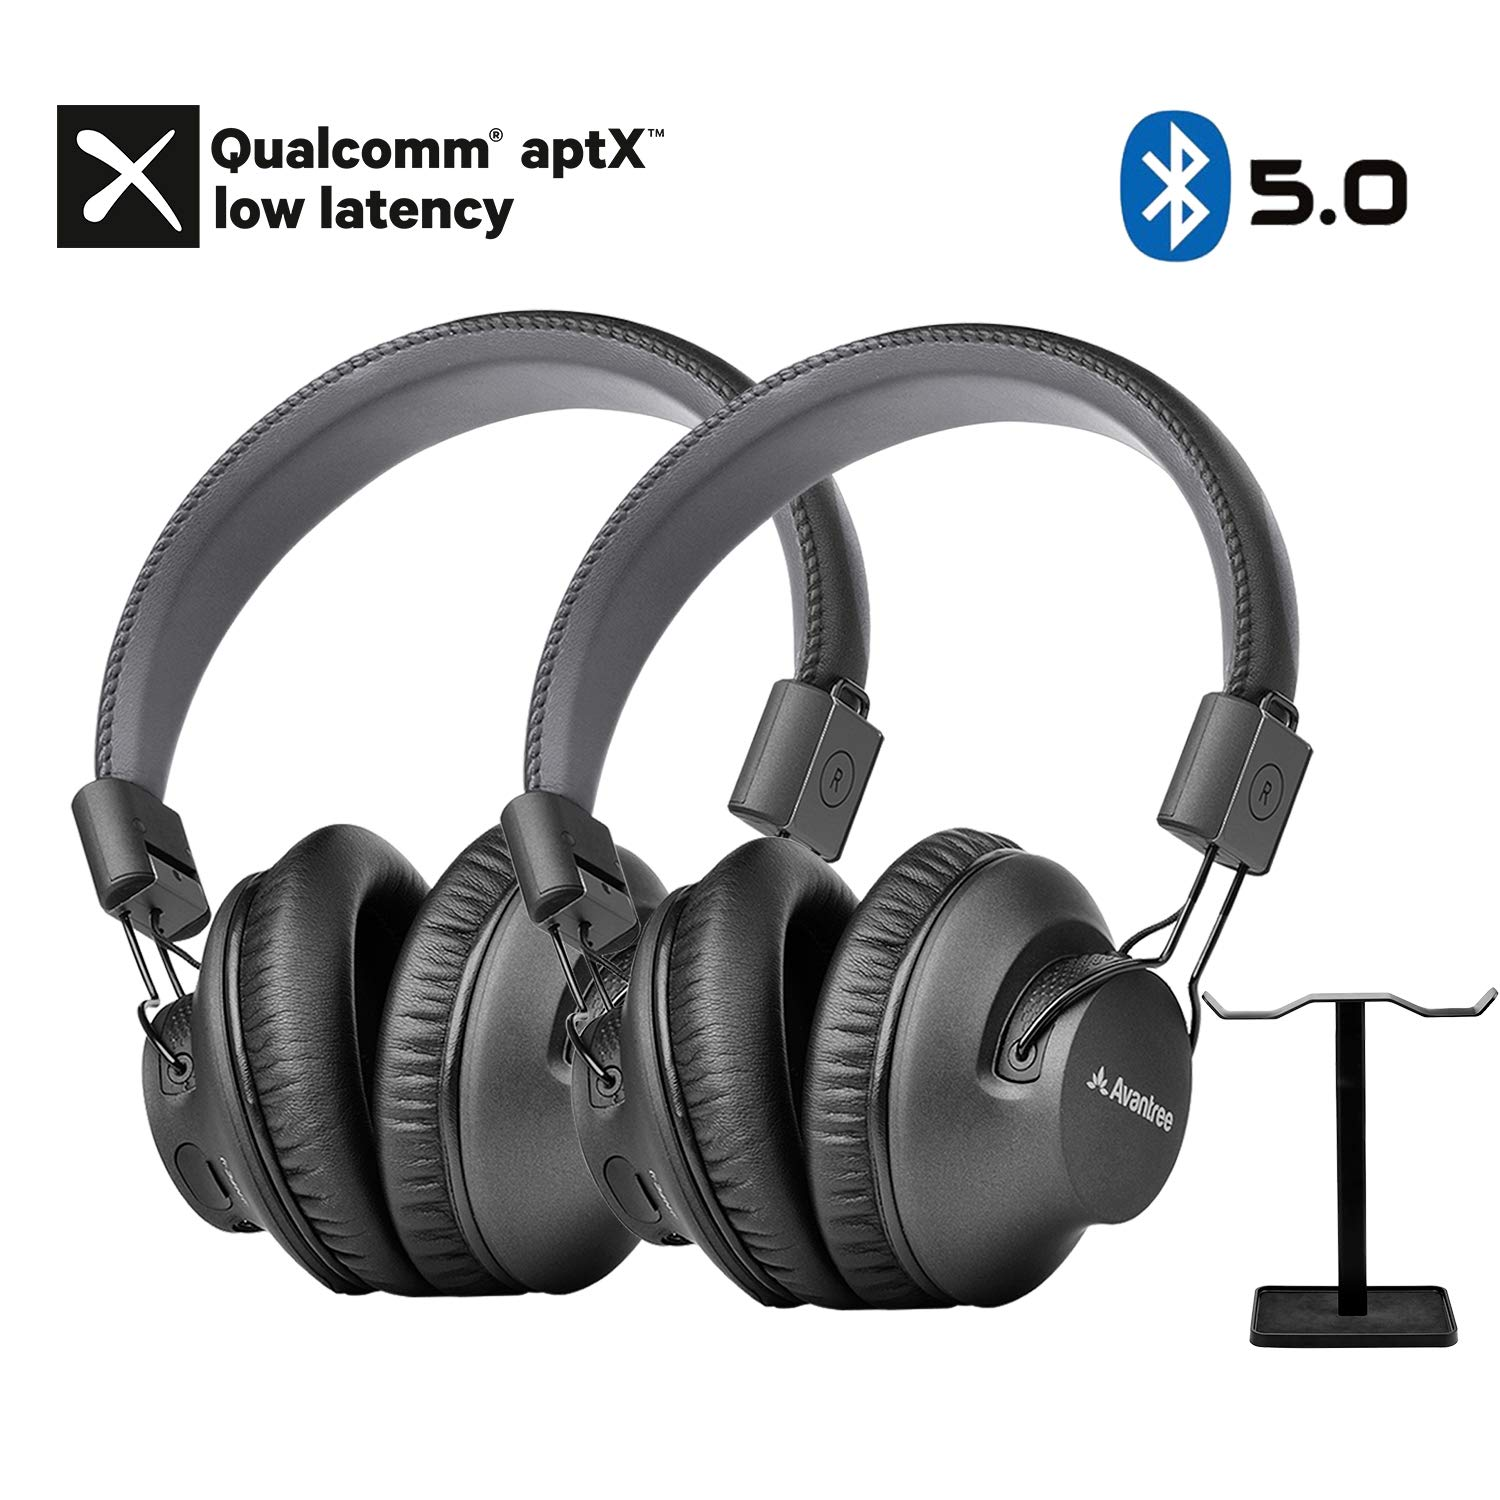 Avantree 2 Pack Bluetooth 5.0 Over Ear Headphones with Metal Dual Headphone Stand for Watching TV, aptX Low Latency, Music Audio Sharing, Compatible with Avantree Transmitters, PC, Phones - AS9PA Set